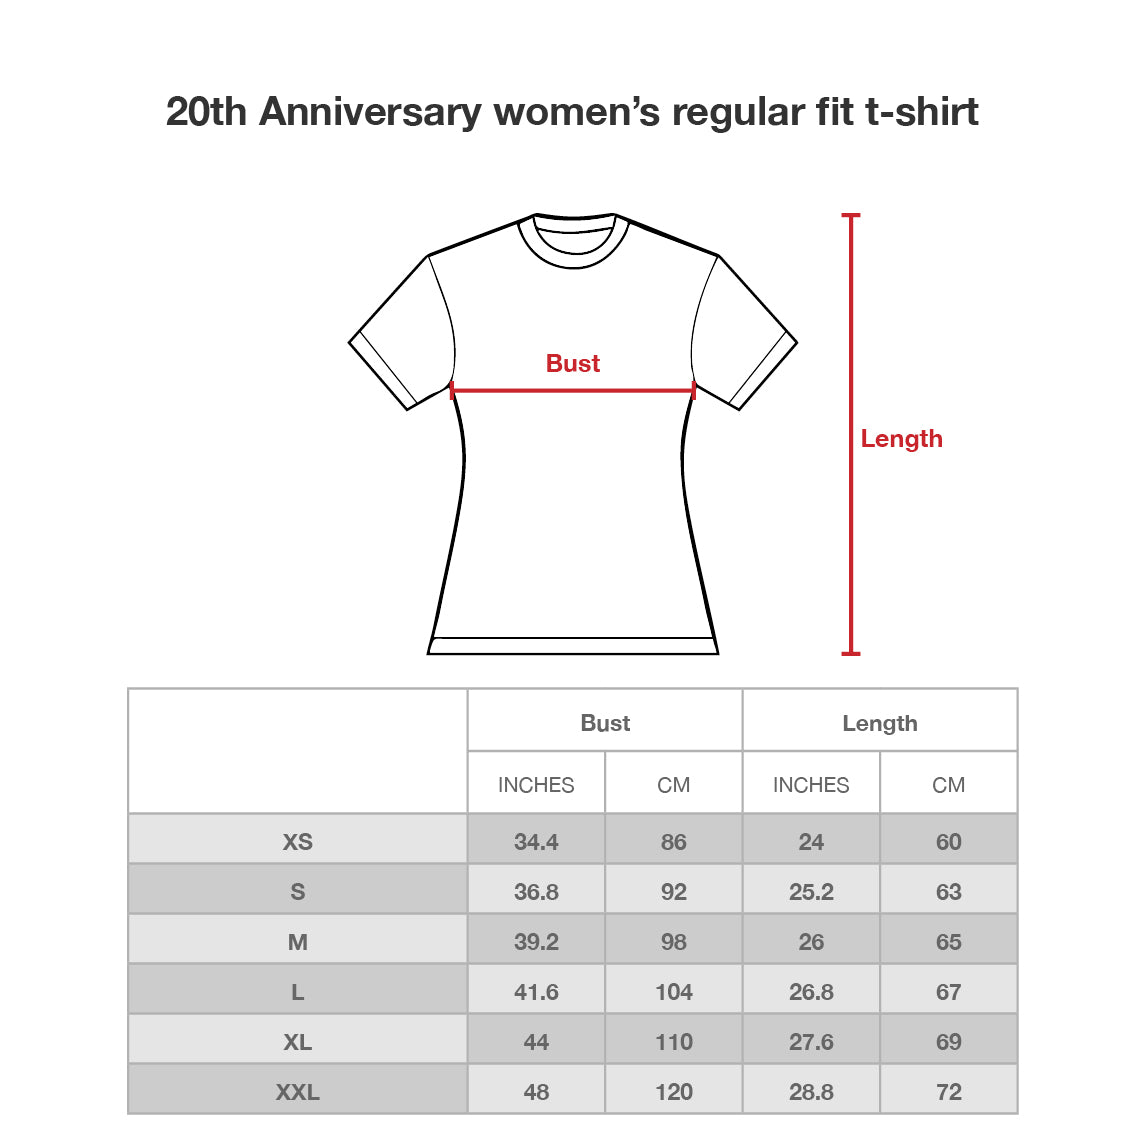 20th Anniversary women t-shirt (off white) Size Chart